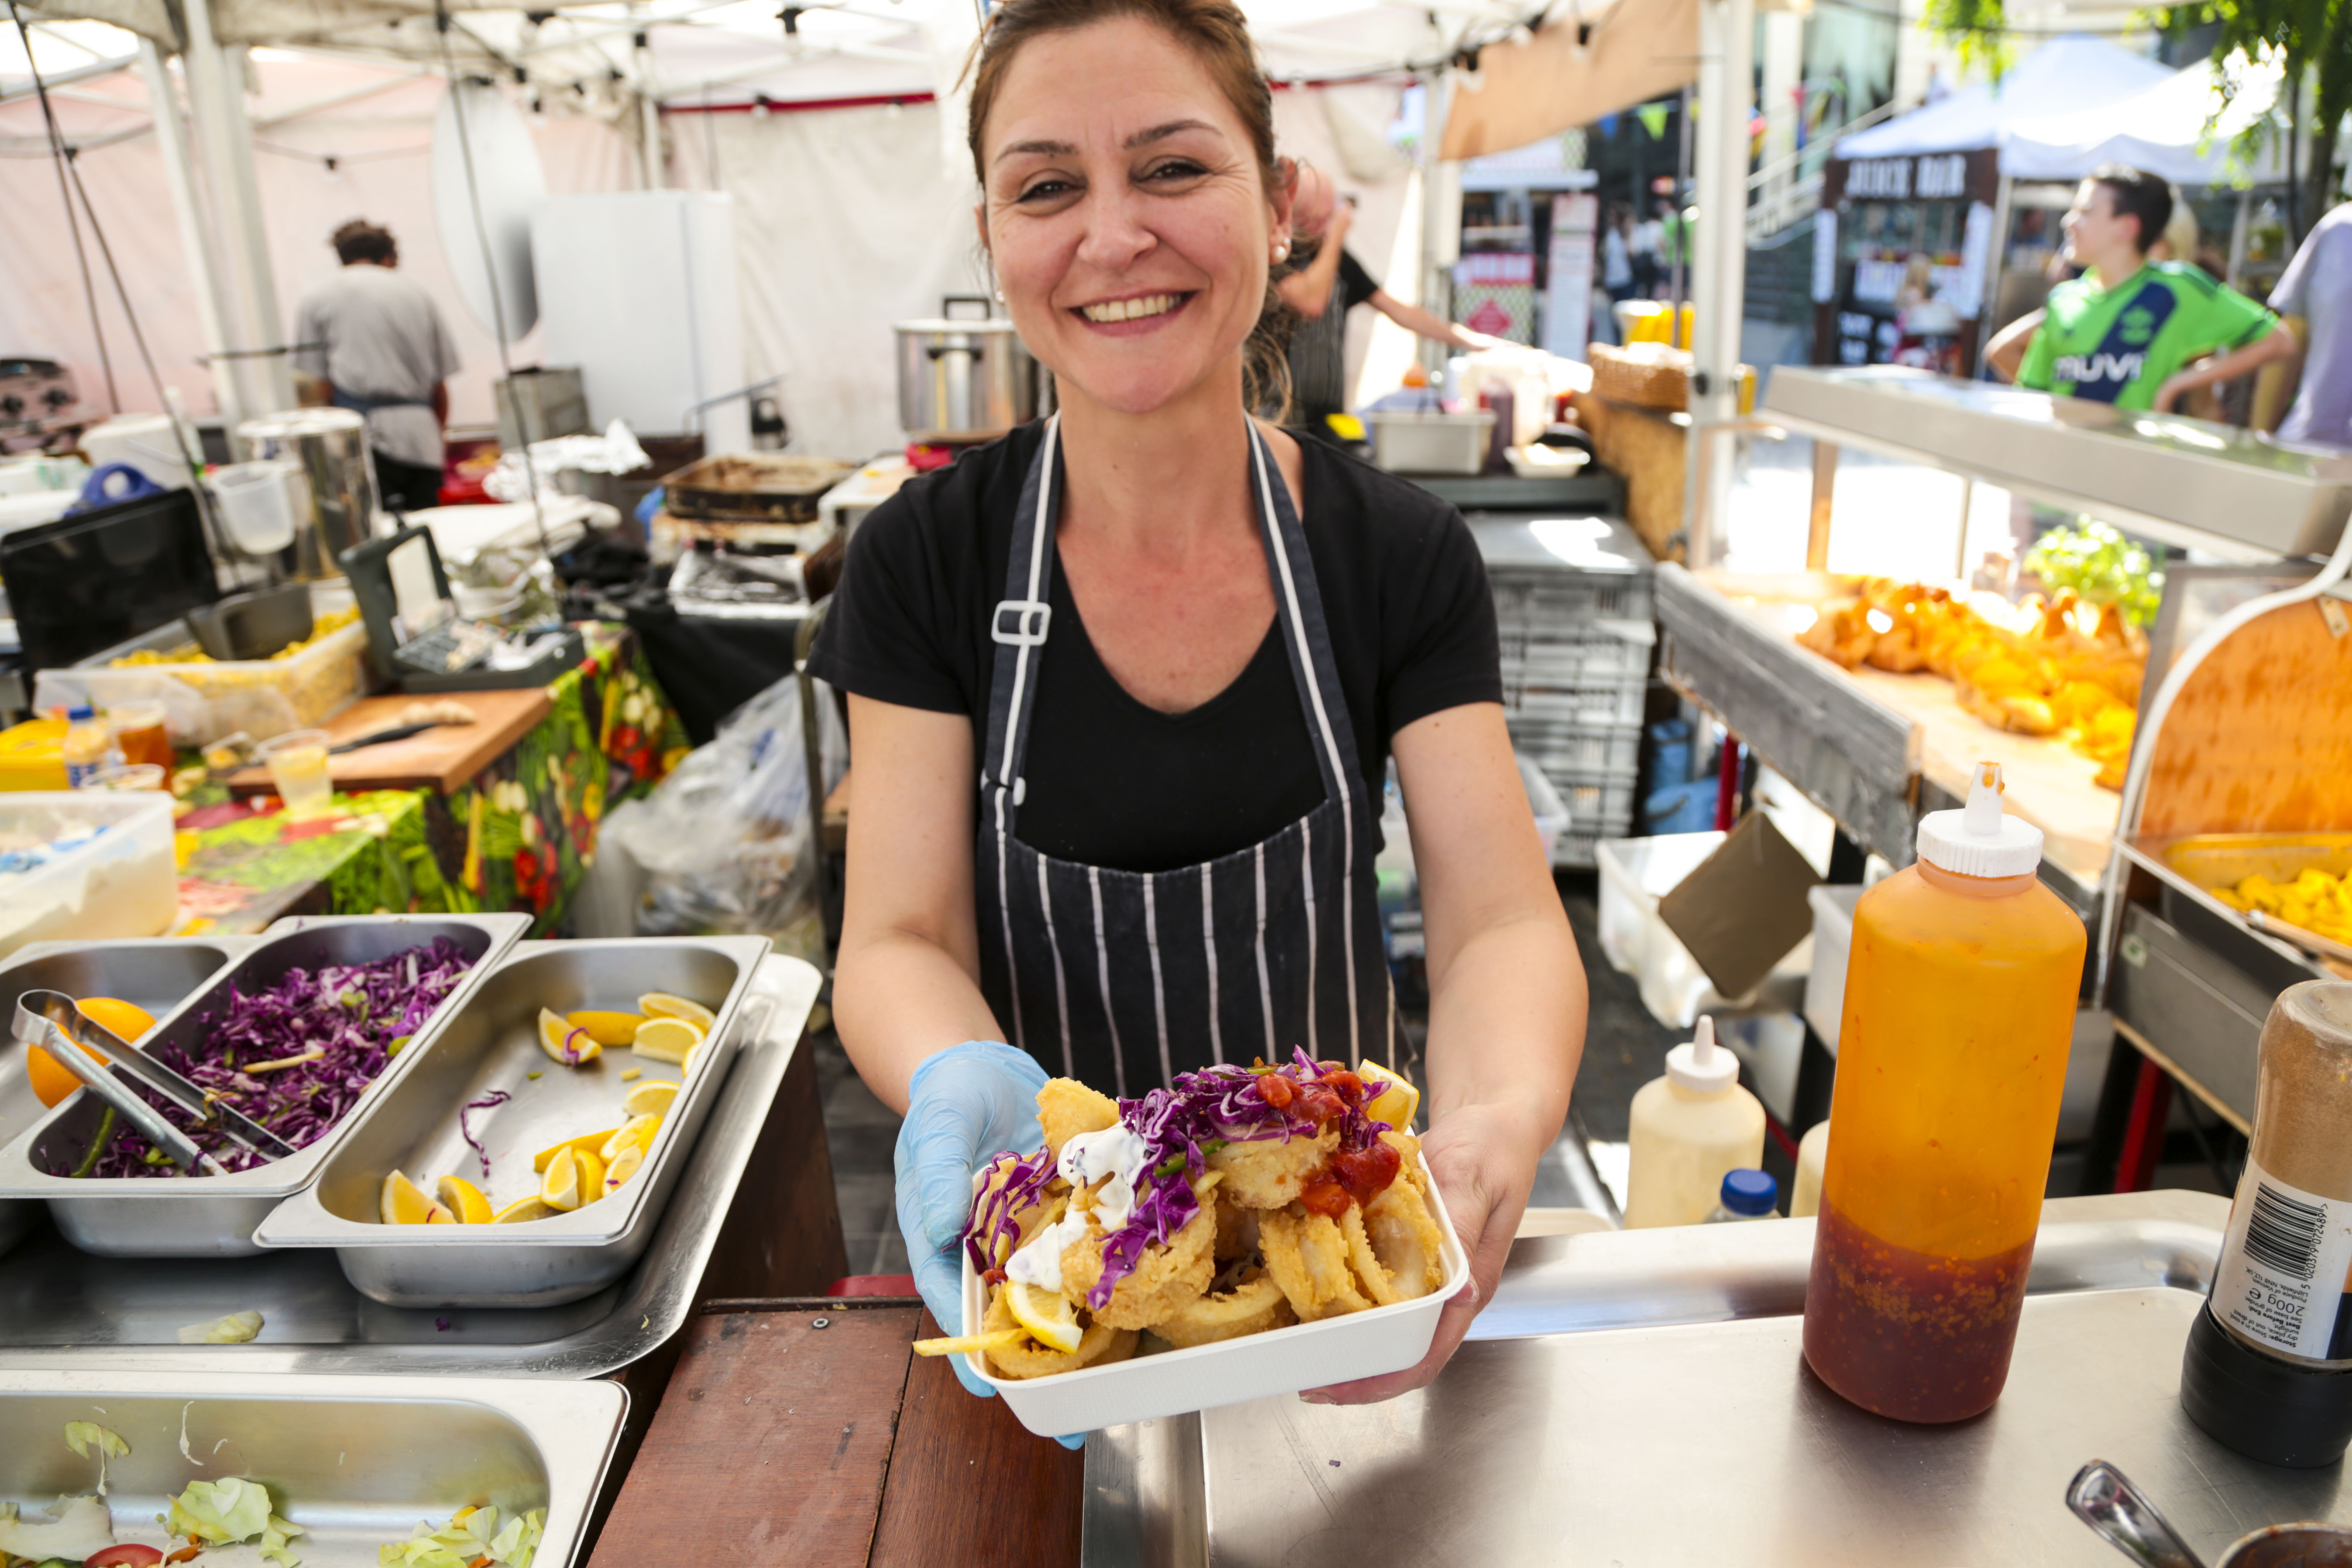 Southbank Centre Food Market.Stall 18 - Bello Gnocco.August 2016